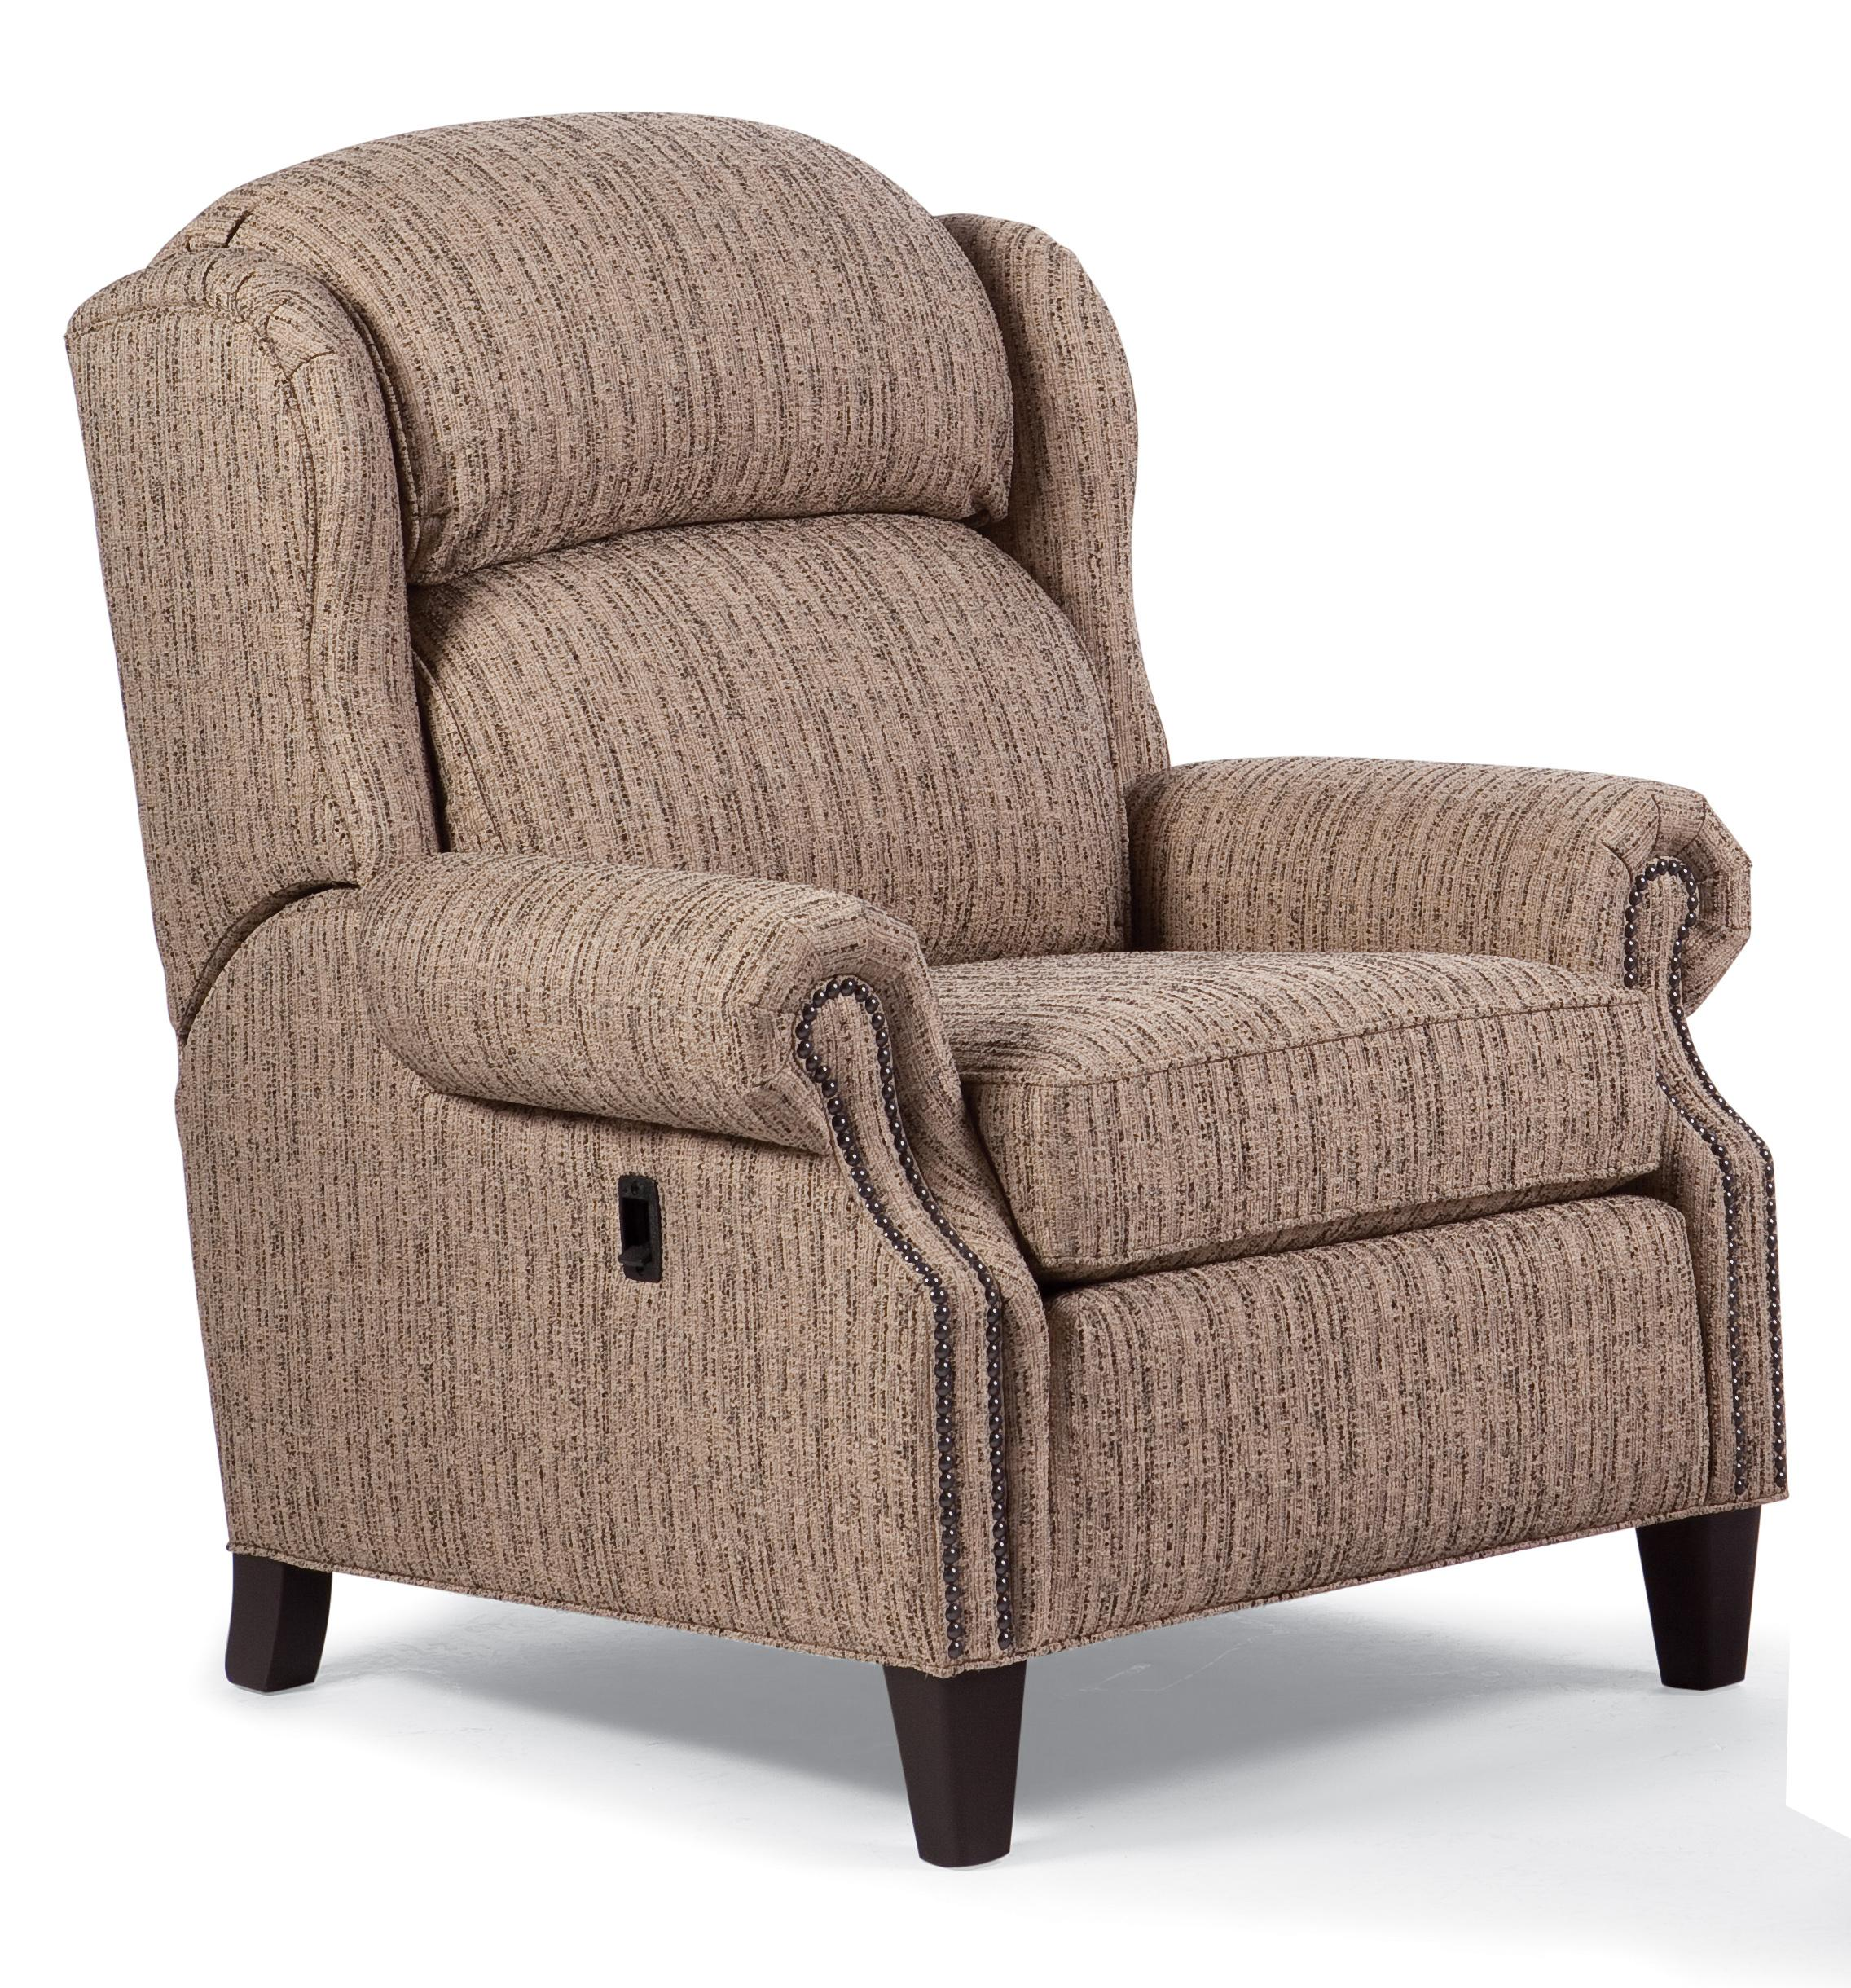 Recliners Traditional Tilt Back Chair With Nailhead Trim